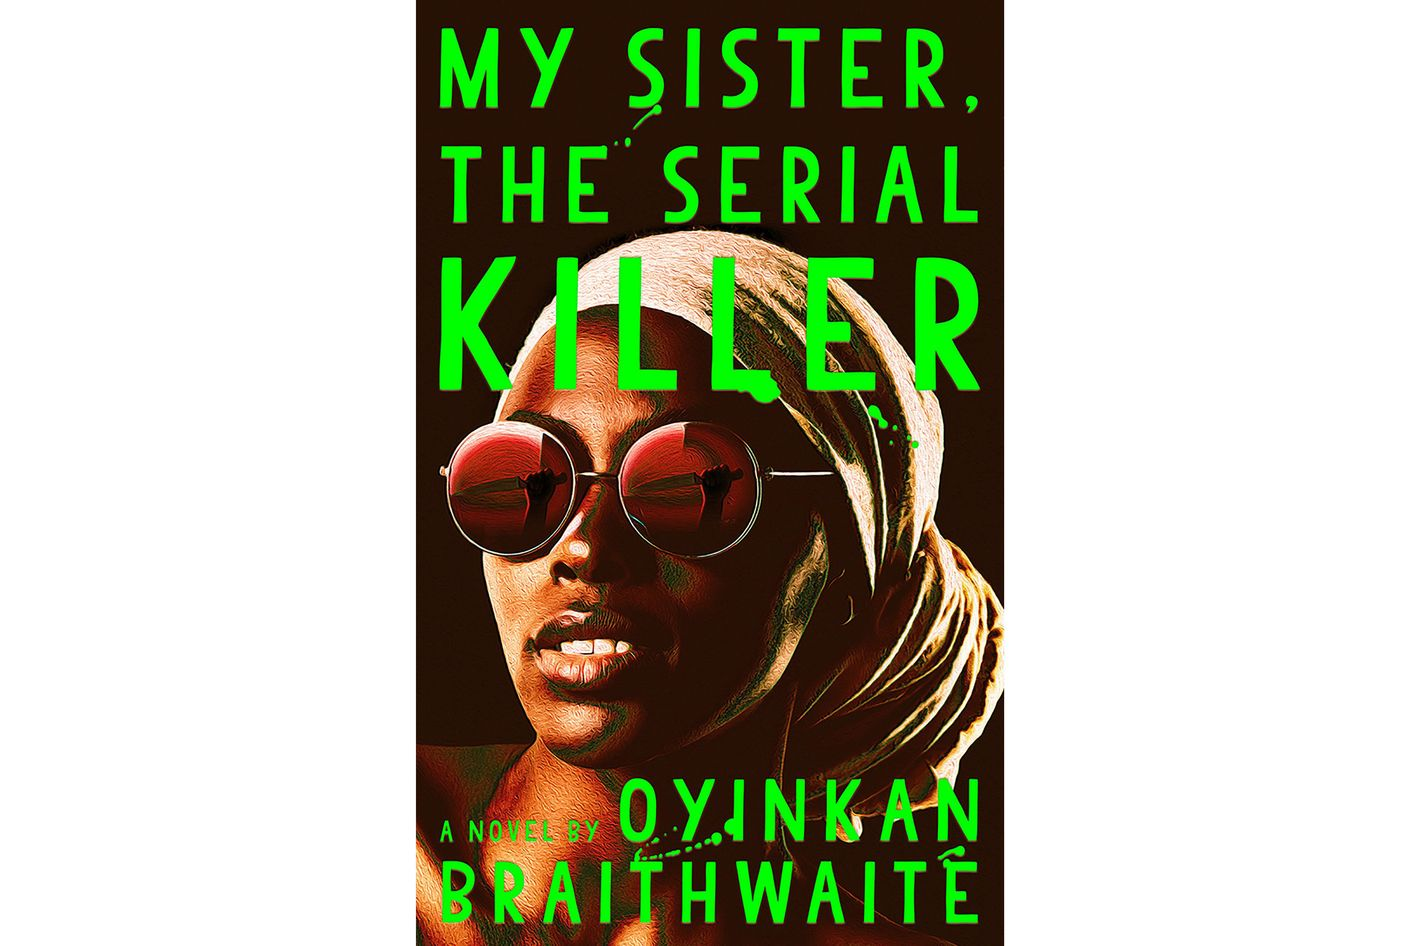 8. <em>My Sister, the Serial Killer</em>, by Oyinkan Braithwaite (Doubleday)